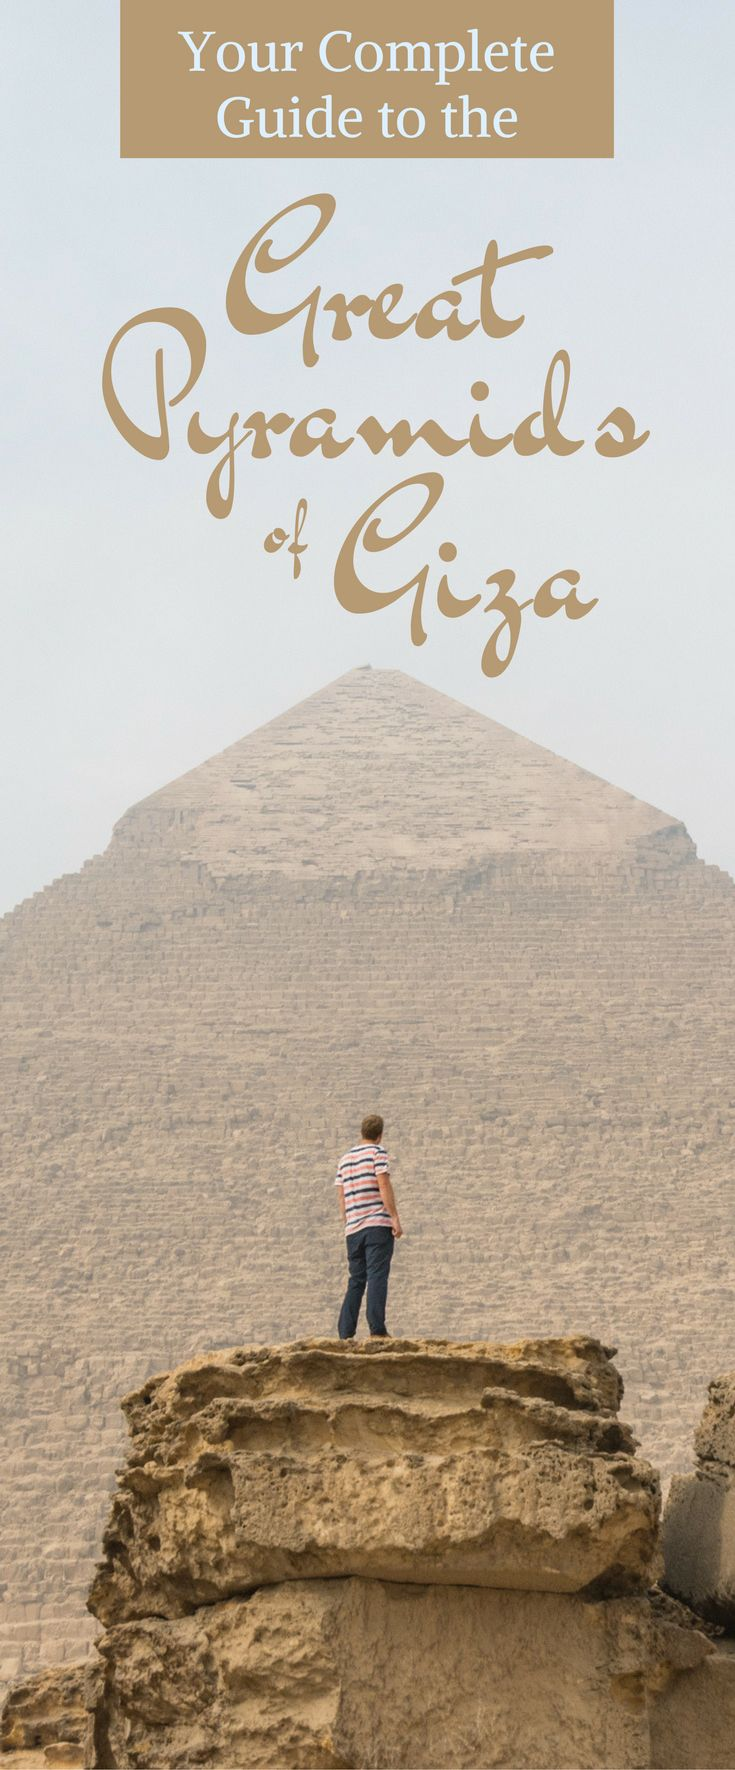 Your Complete Guide to the Great Pyramids of Giza: Everything you need to know before visiting the pyramids in Egypt including when to go, where to stay, and what scams to avoid! by Wandering Wheatleys (@wanderingwheatleys) #pyramids #Giza #Cairo #Egypt #MiddleEast #Travel #TravelGuide #Africa